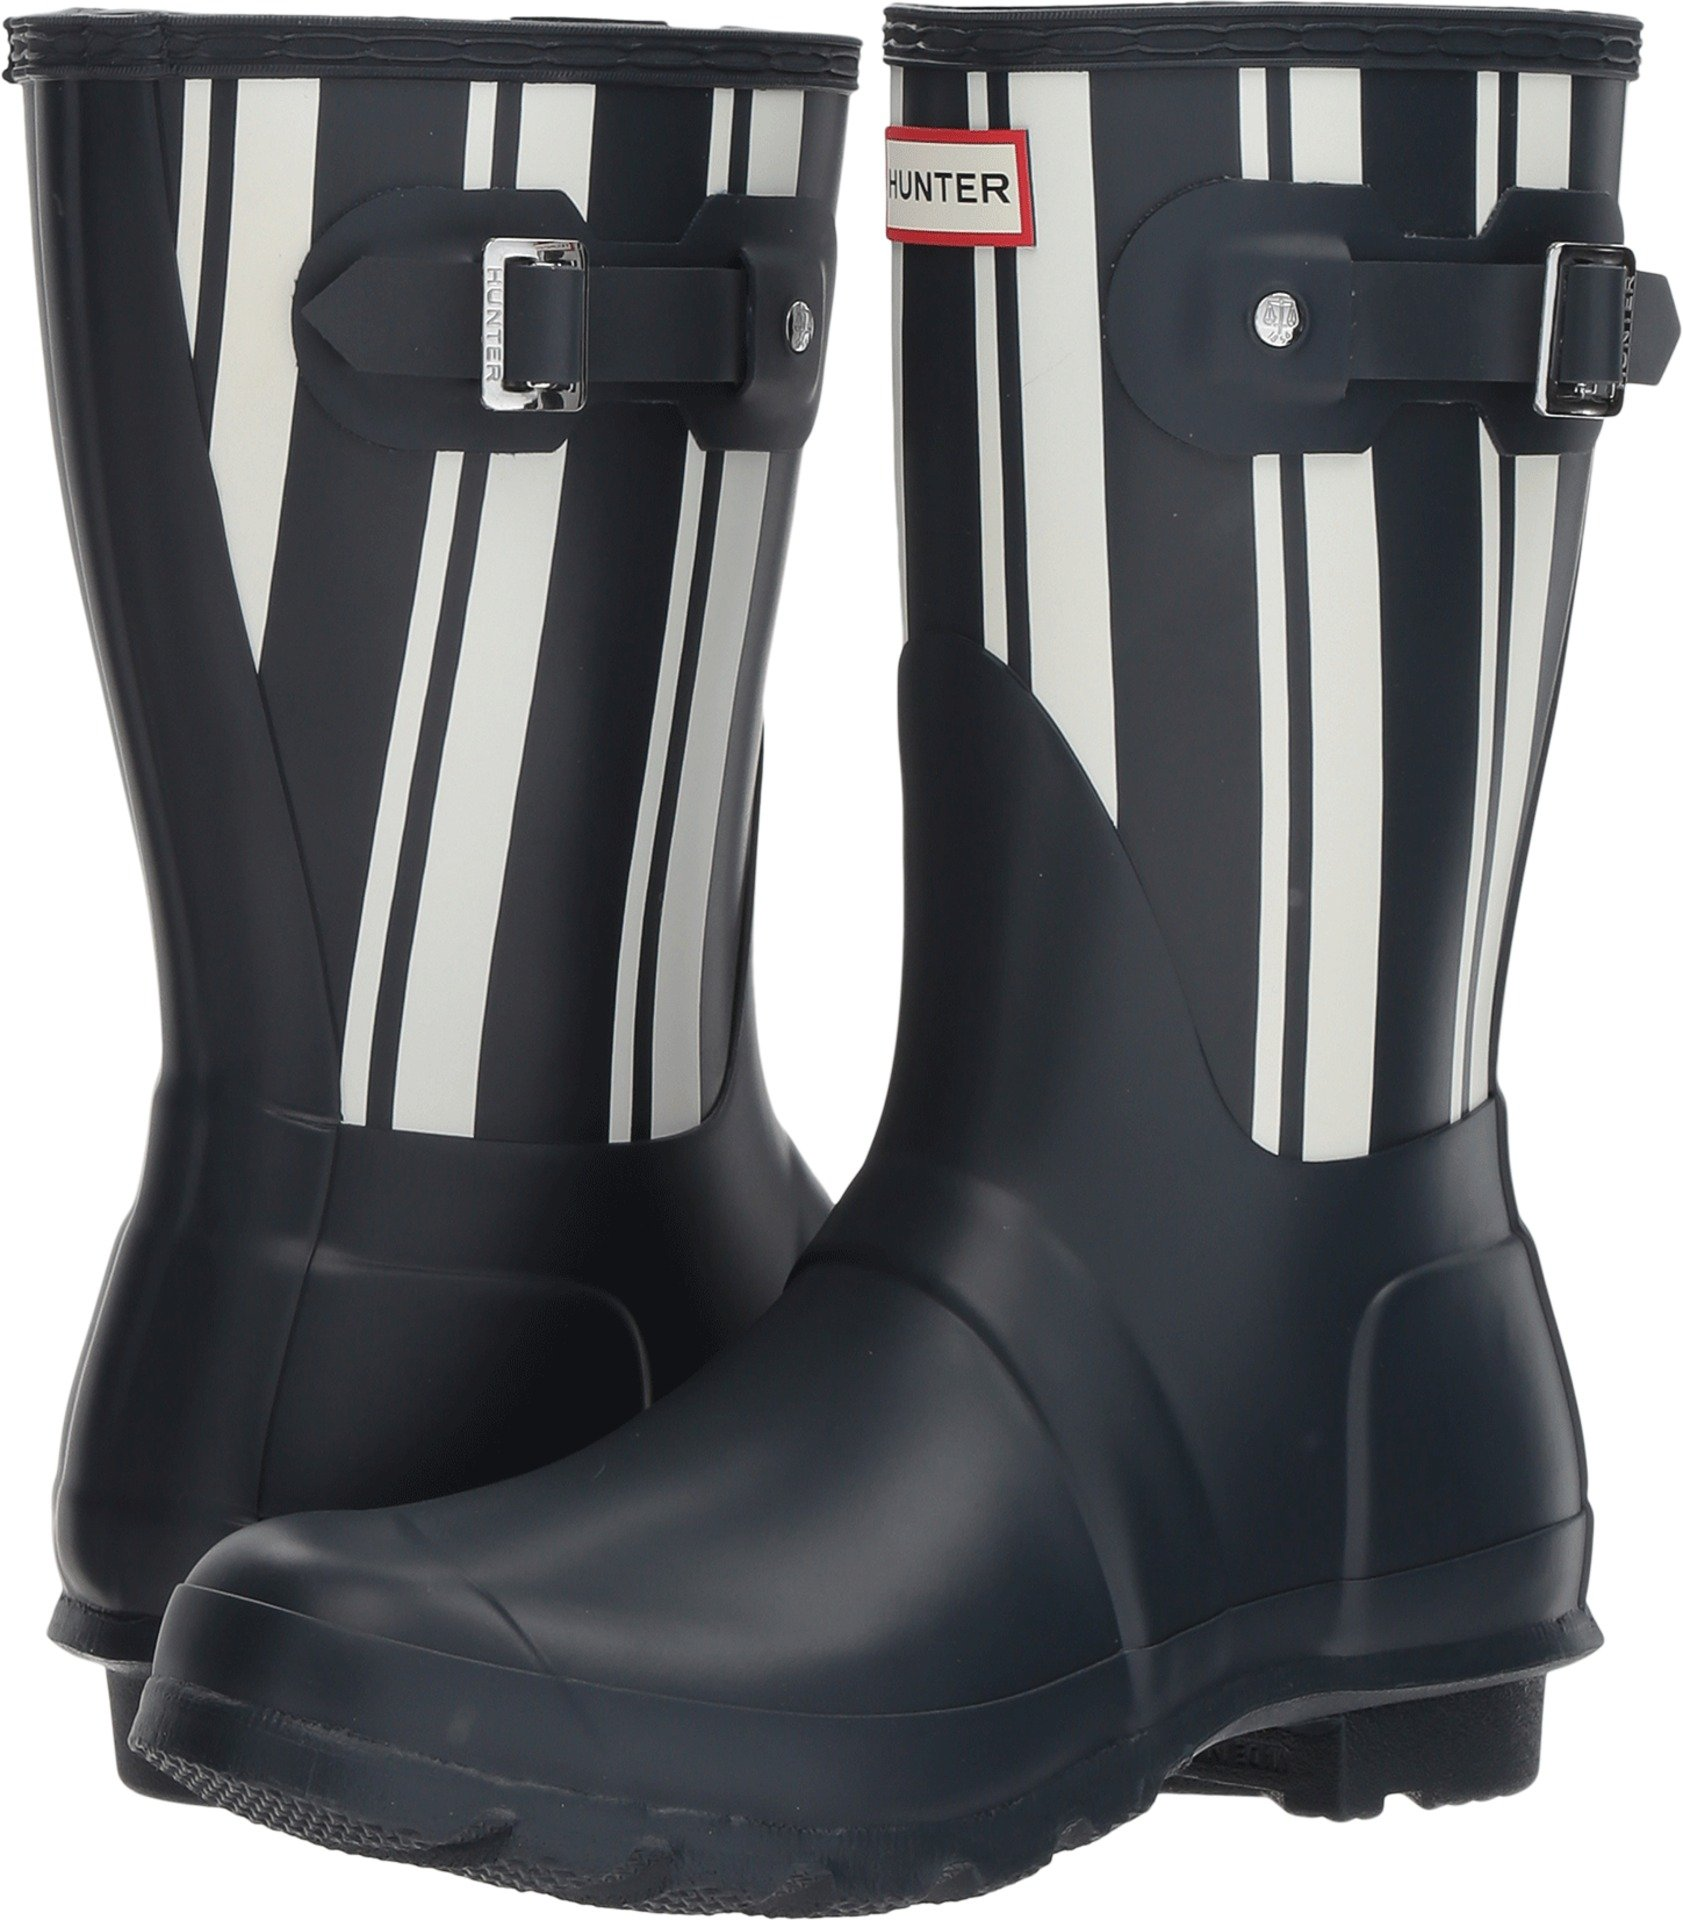 Hunter Women's Original Garden Stripe Short Rain Boots Navy/White 7 M US by Hunter